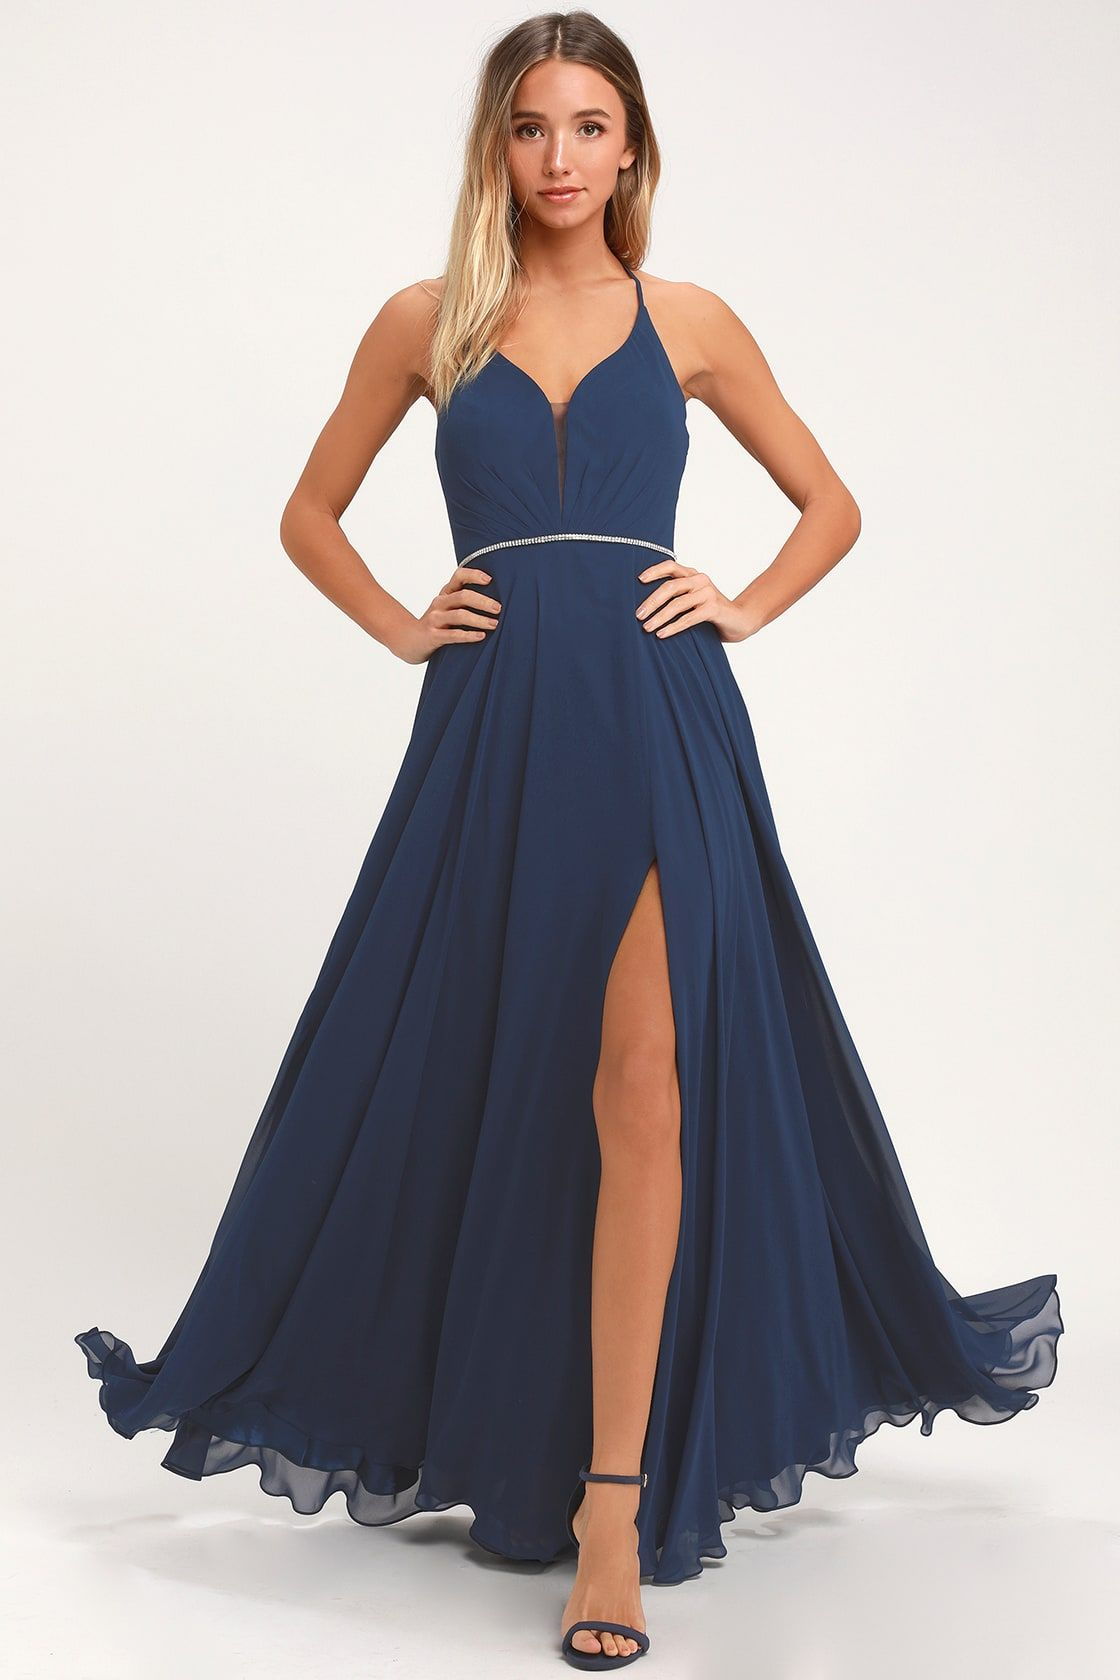 d8872680a40d Lulus | She's Gorgeous Navy Blue Lace-Up Rhinestone Maxi Dress ...